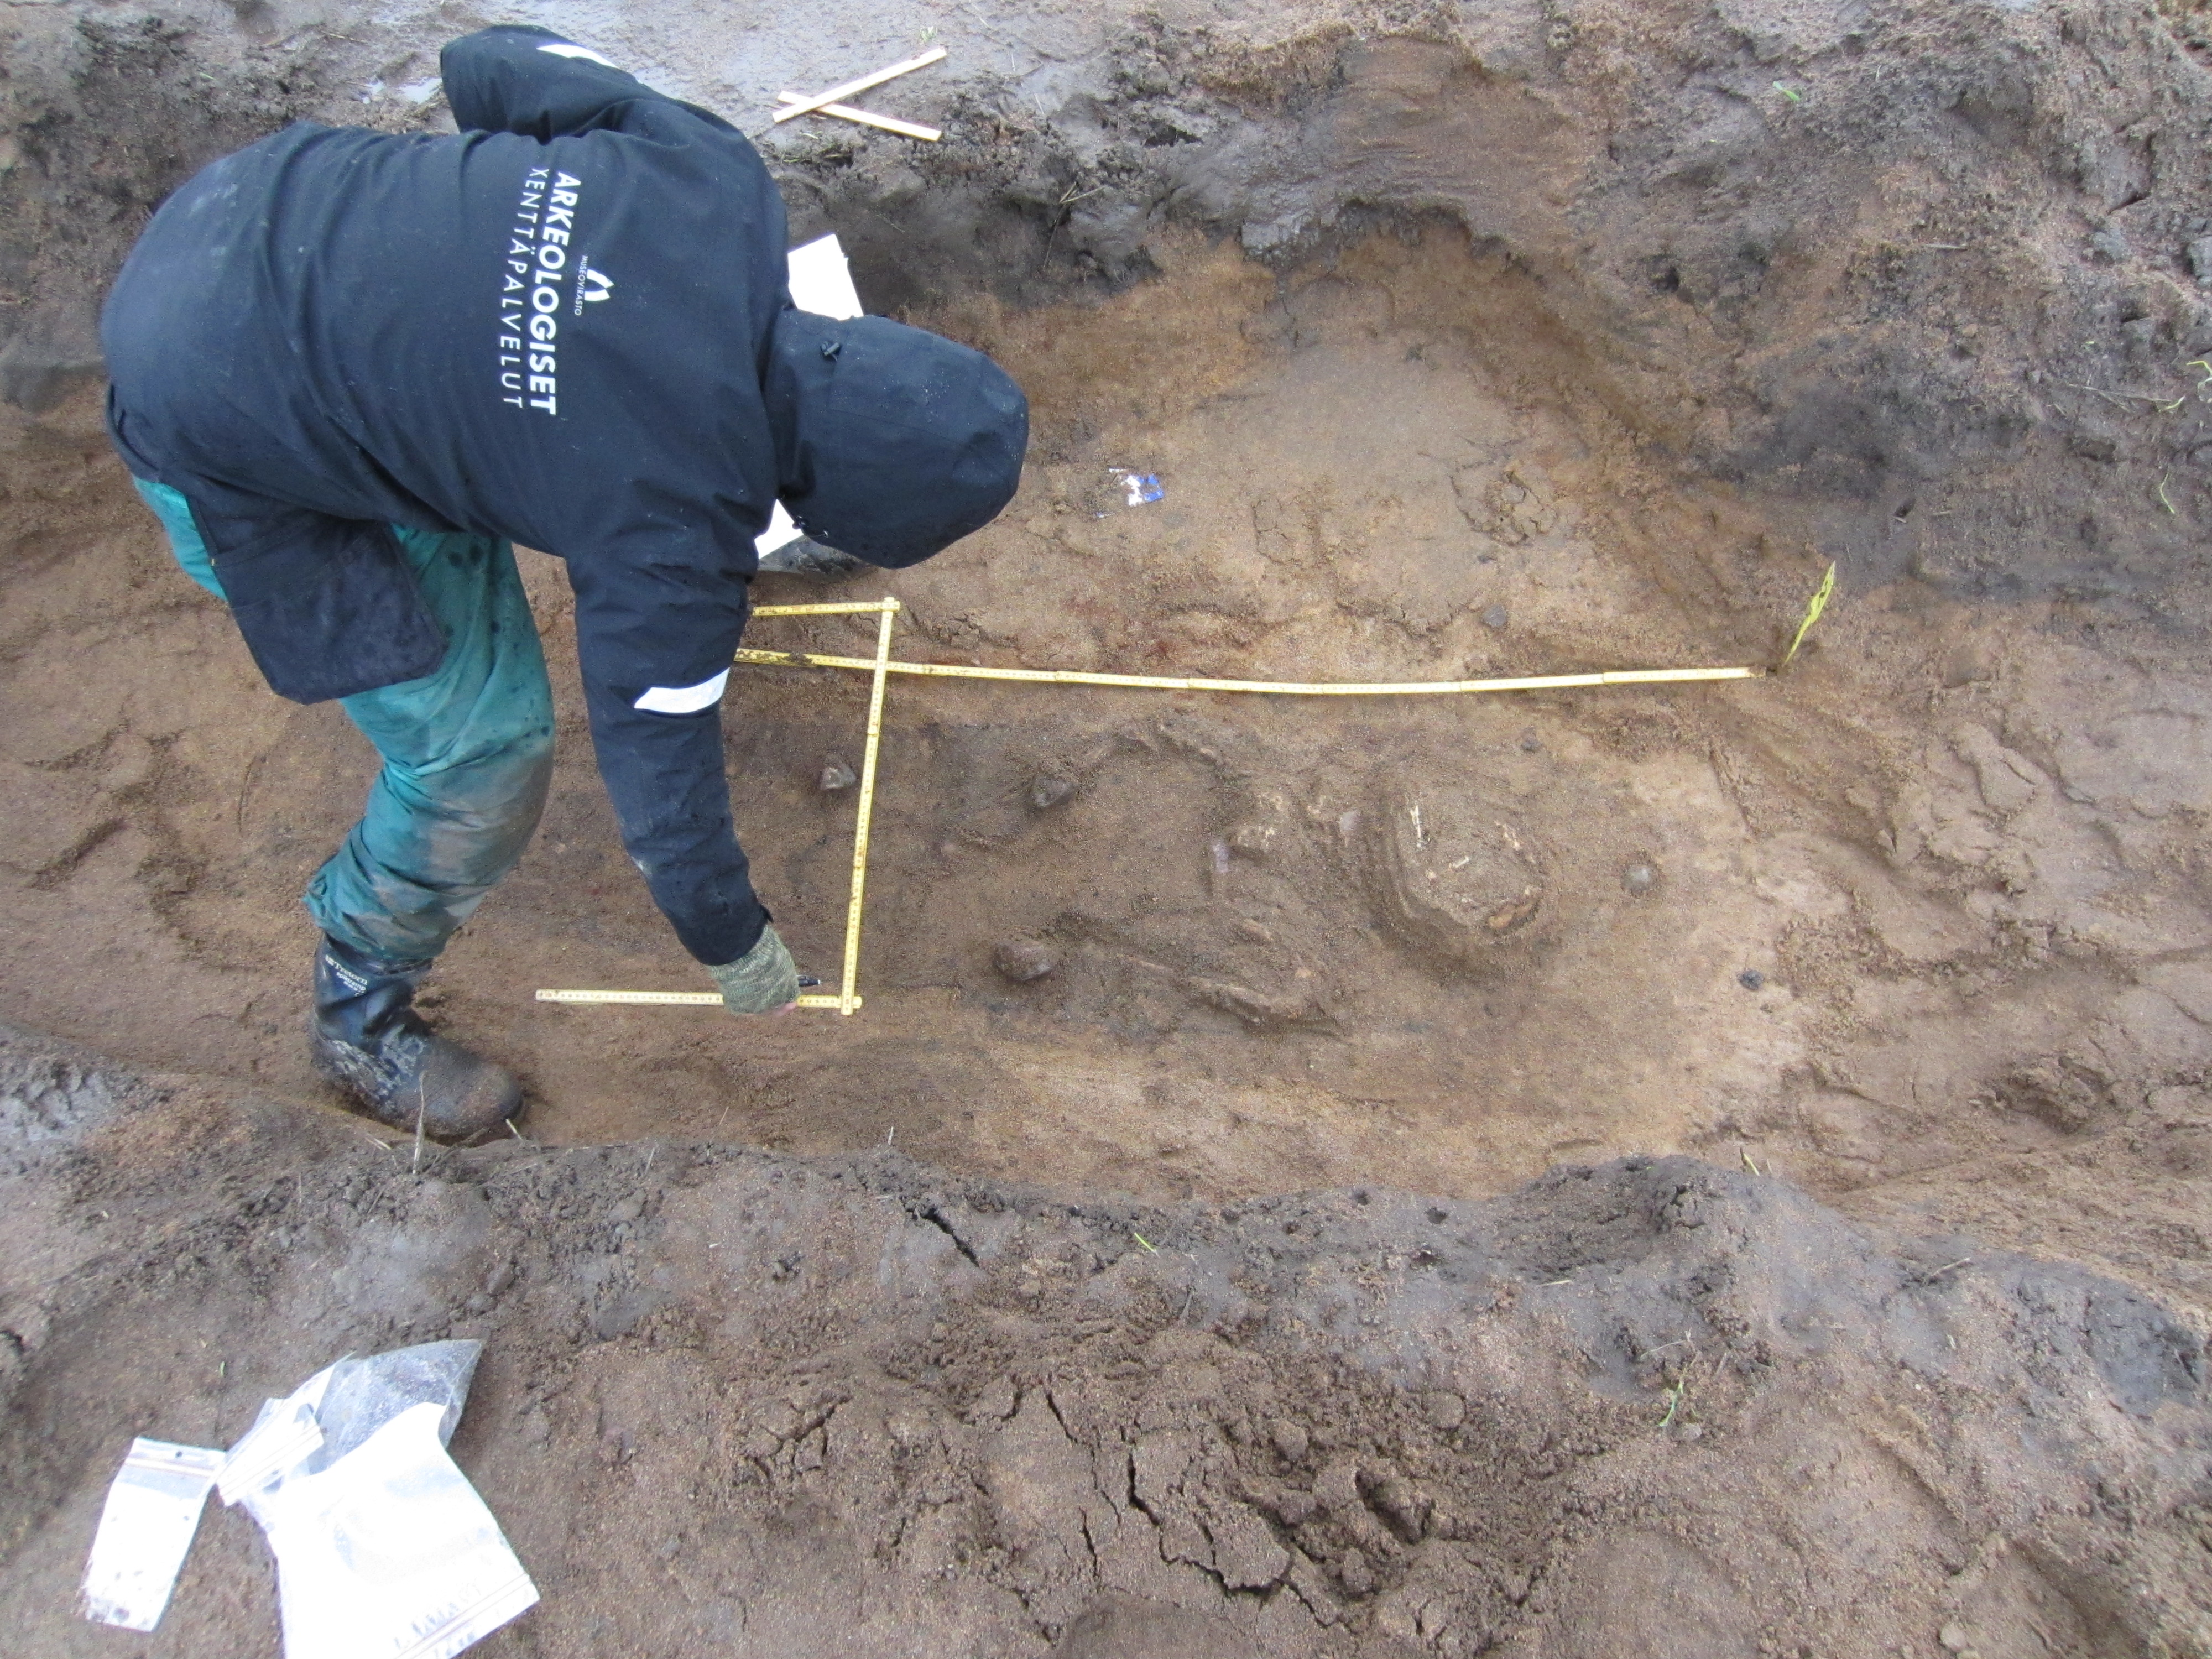 Grave of 12th-century warrior discovered in Finland